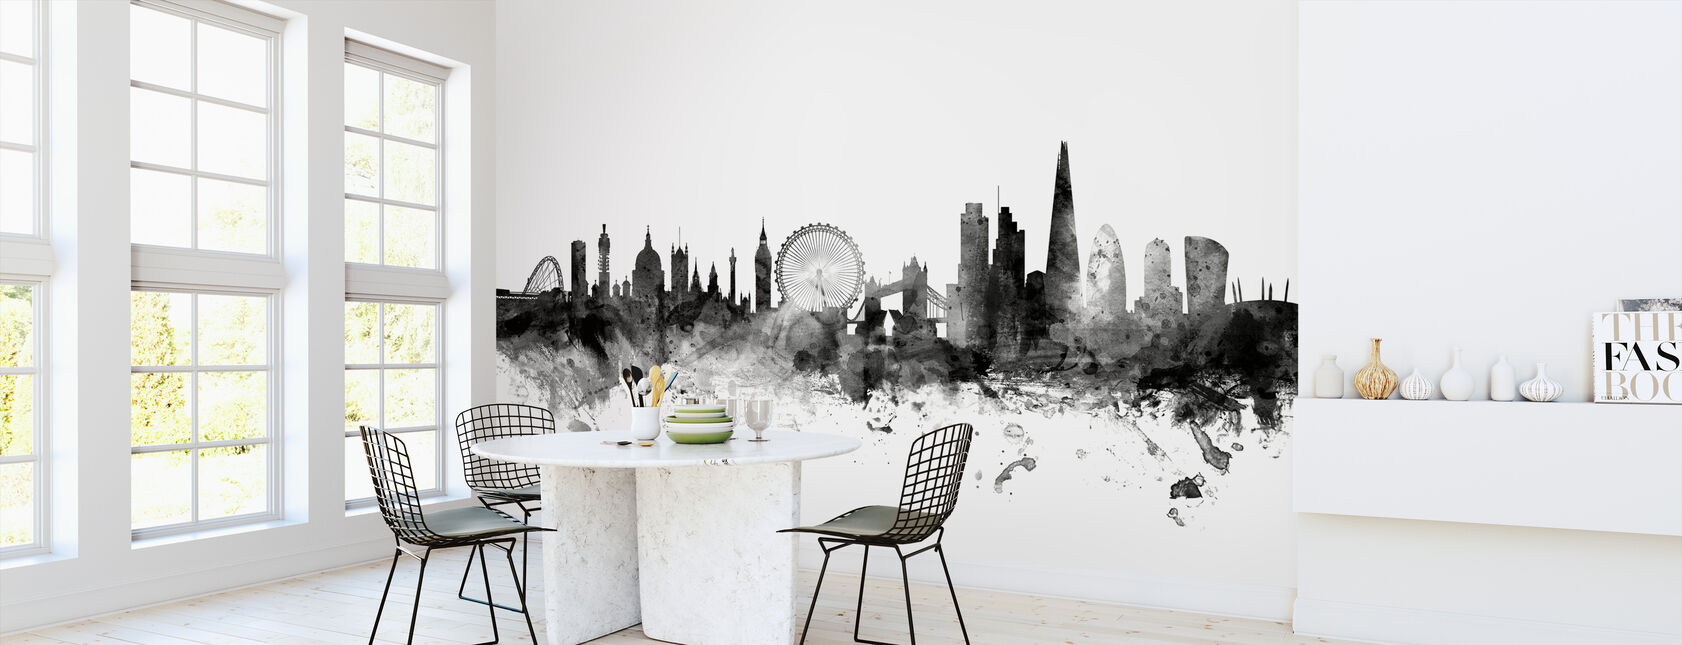 London Skyline 2 Black - Wallpaper - Kitchen